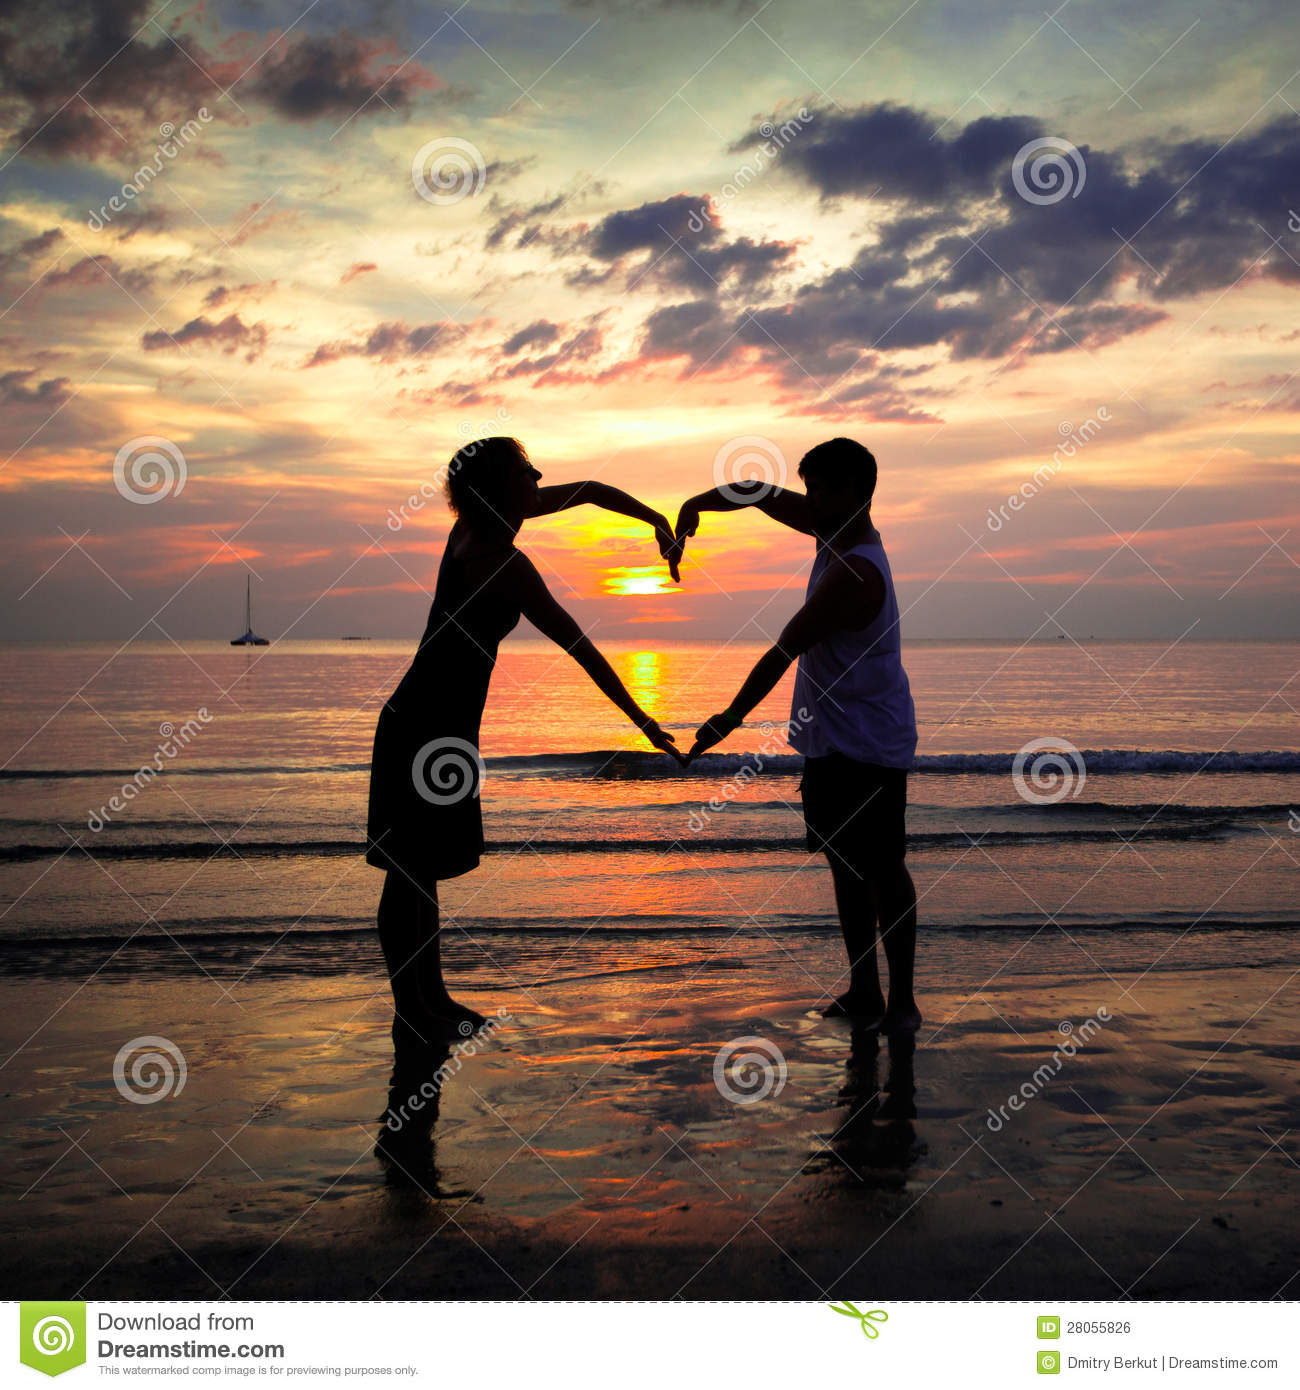 Young Couple Holding Hands Heart-shaped At Sunset Stock Photo ... for Couple Holding Hands Silhouette Sunset  61obs